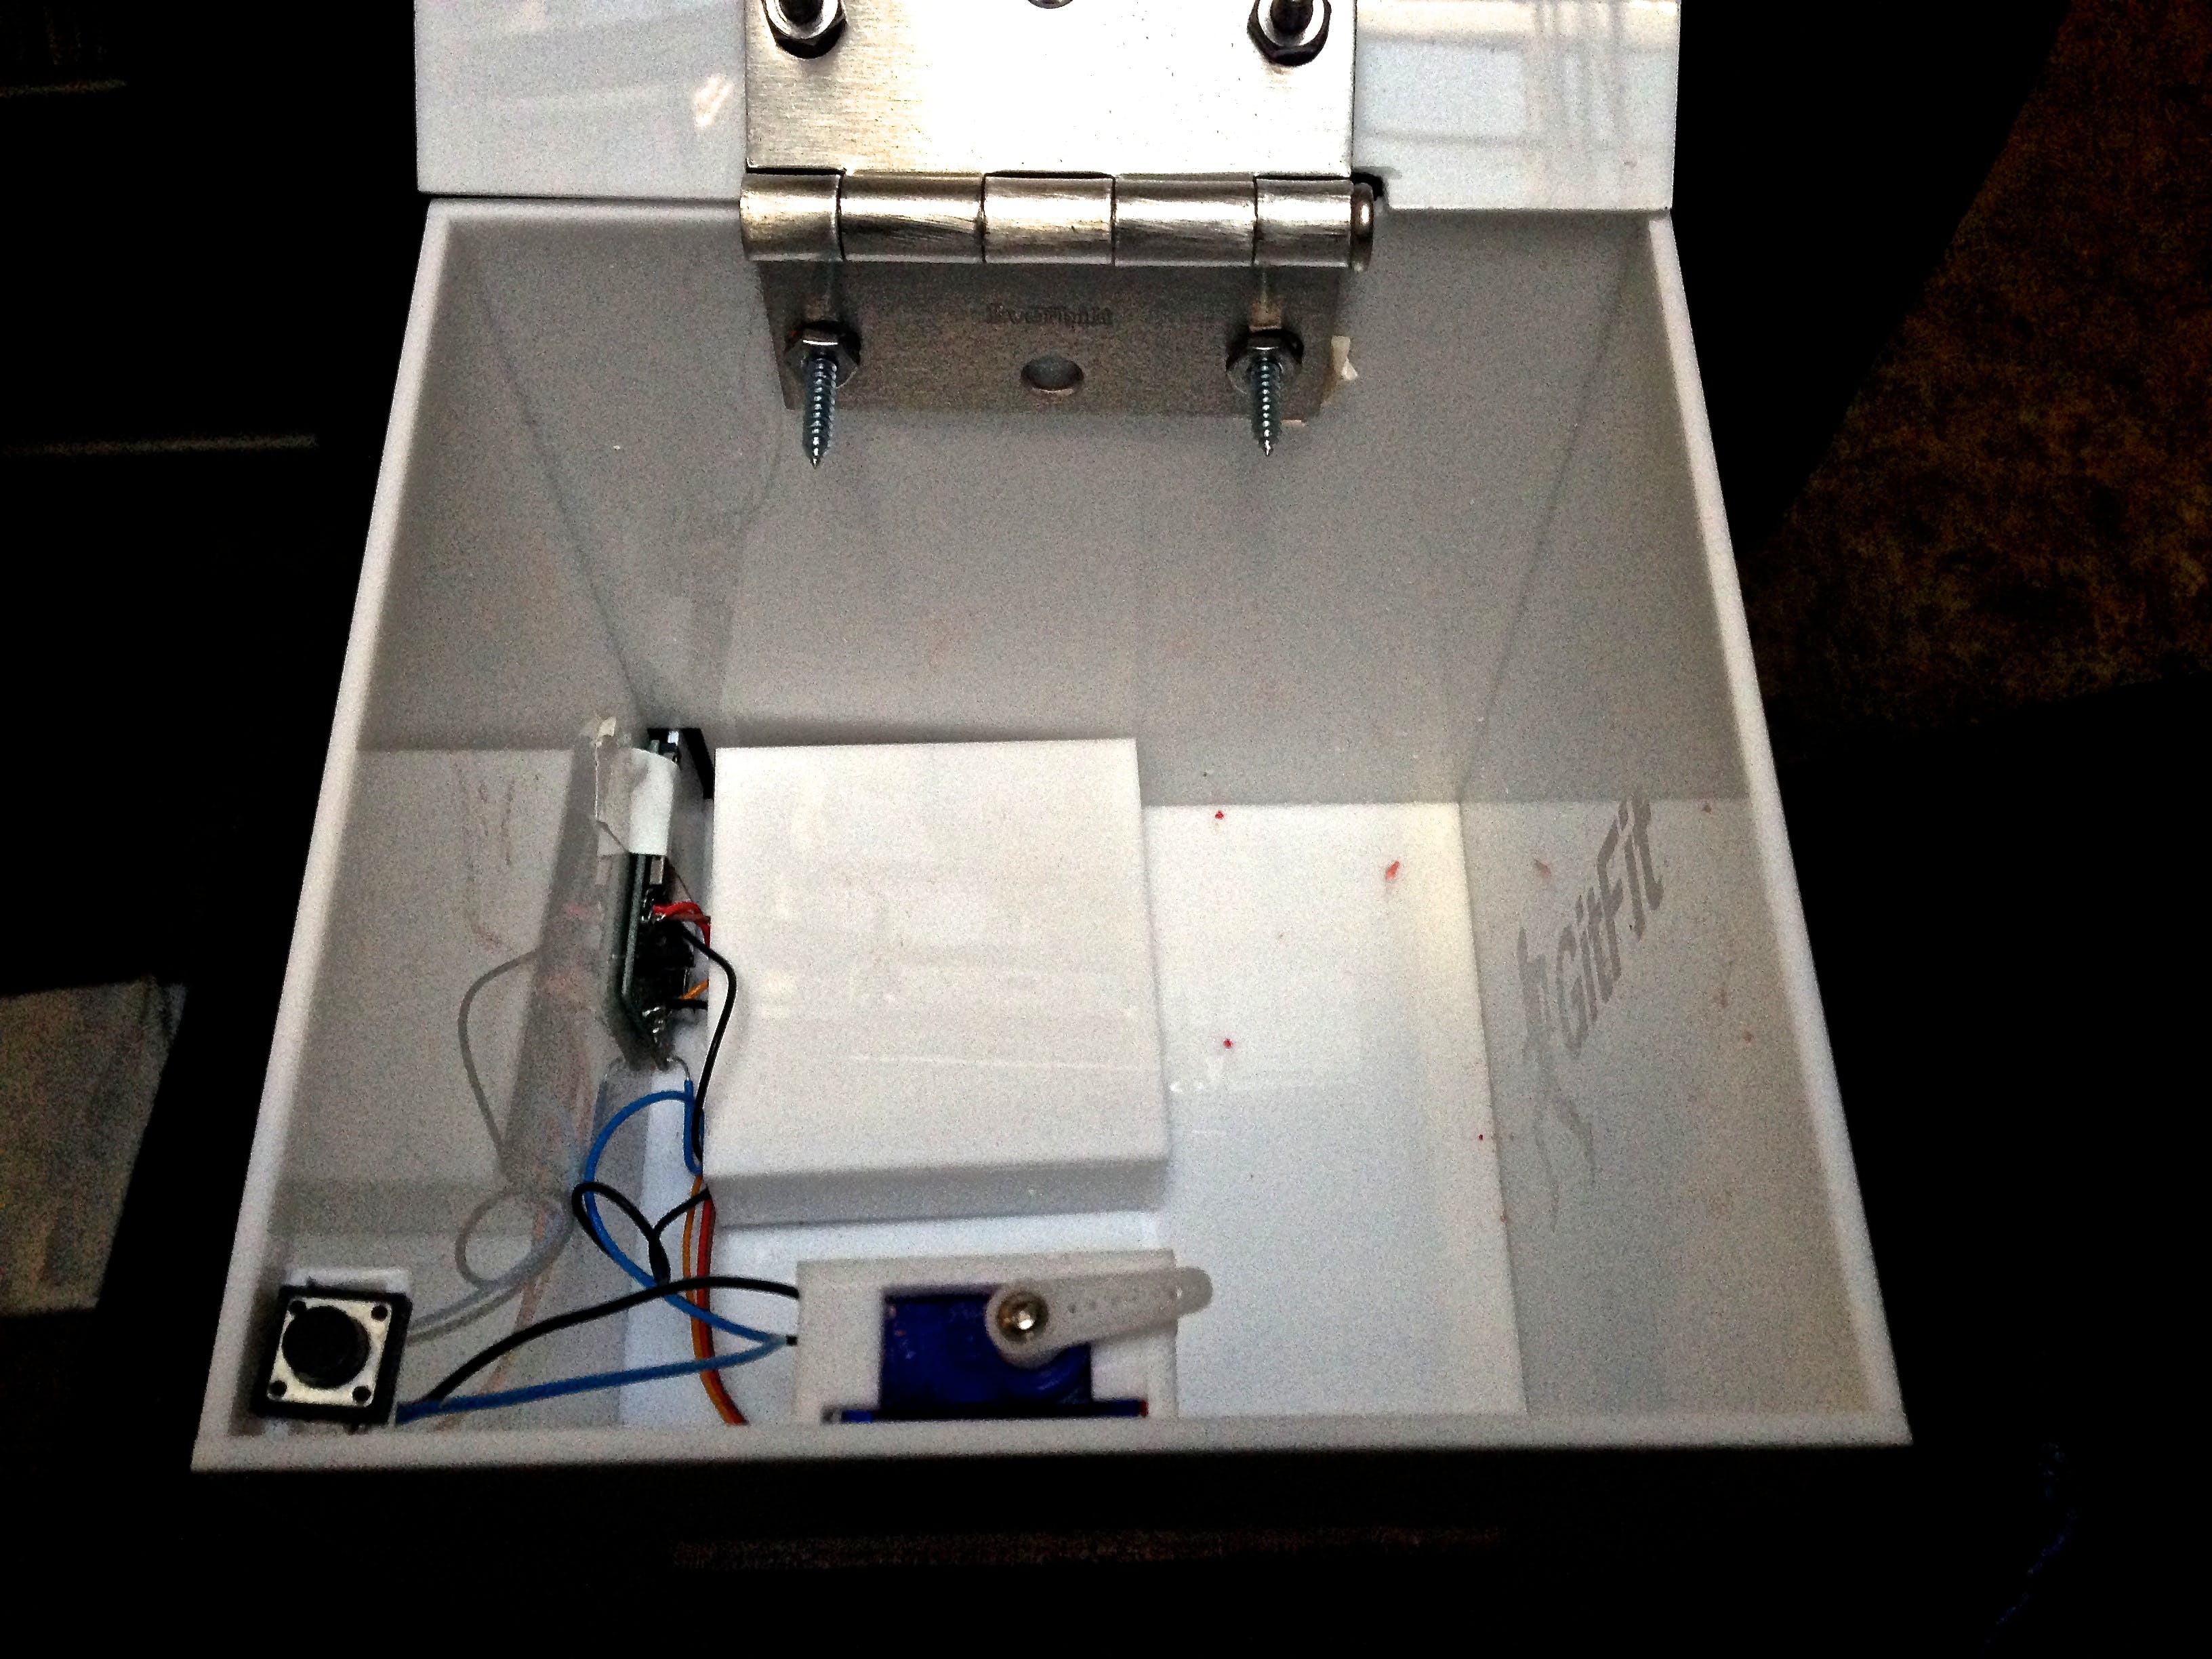 Inside the reward box: battery, electric imp, button switch, and servos motor for locking mechanism